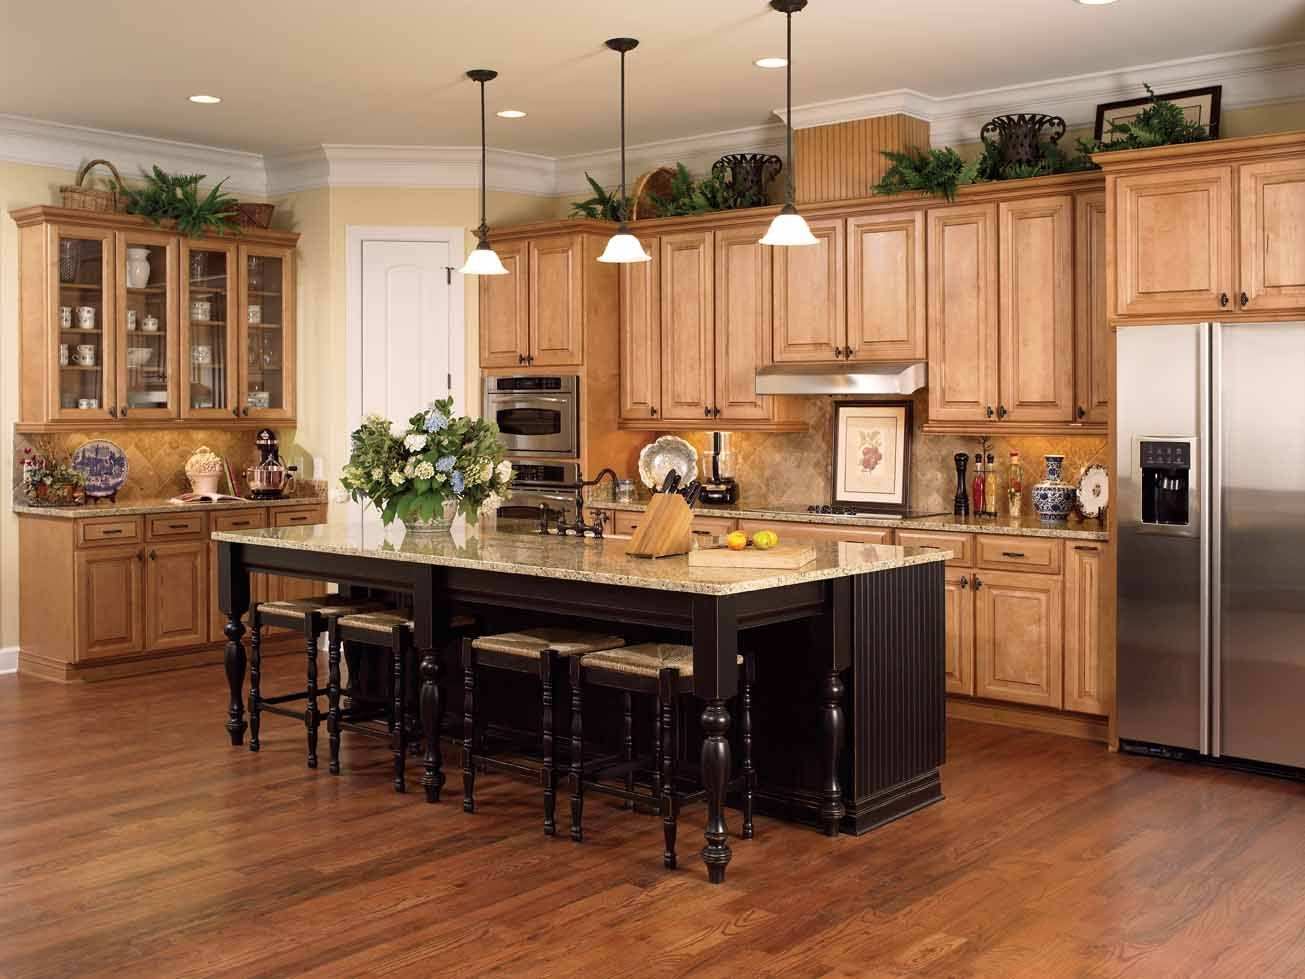 black kitchen islands hot water for sink picture of honey colored oak cabinets with dark wood floor